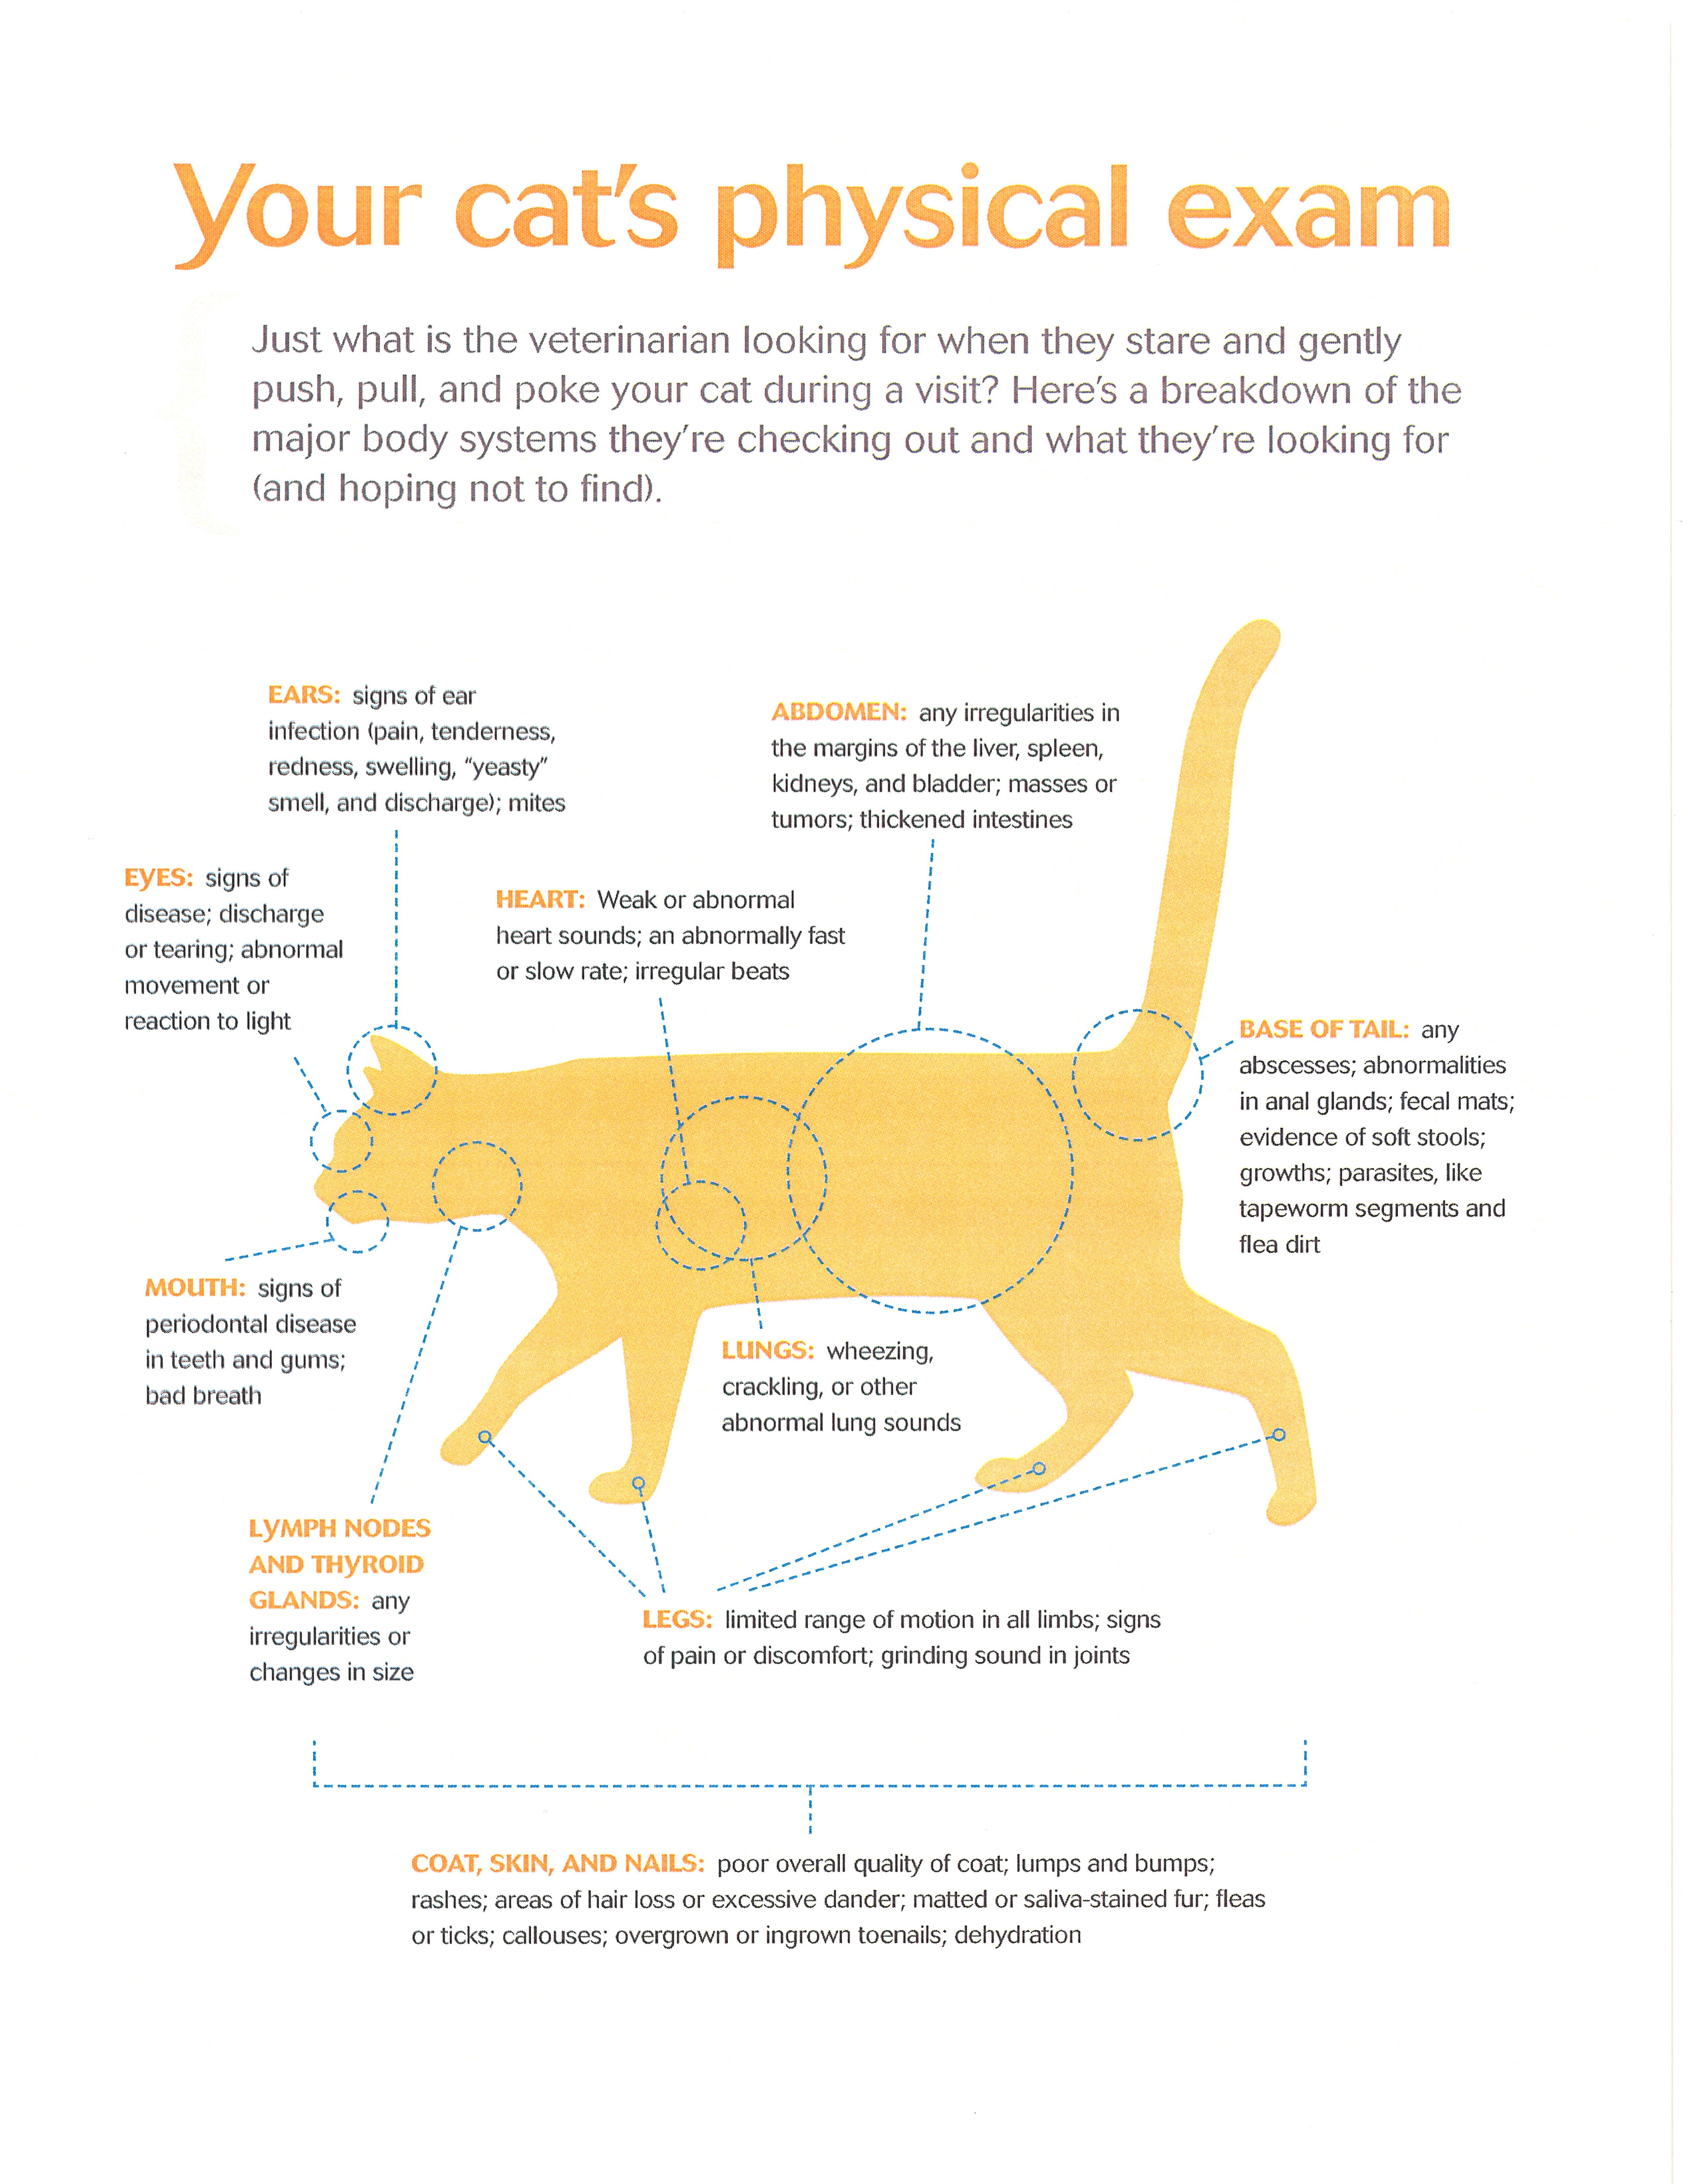 Your cat's physical exam - what your veterinarian is ...